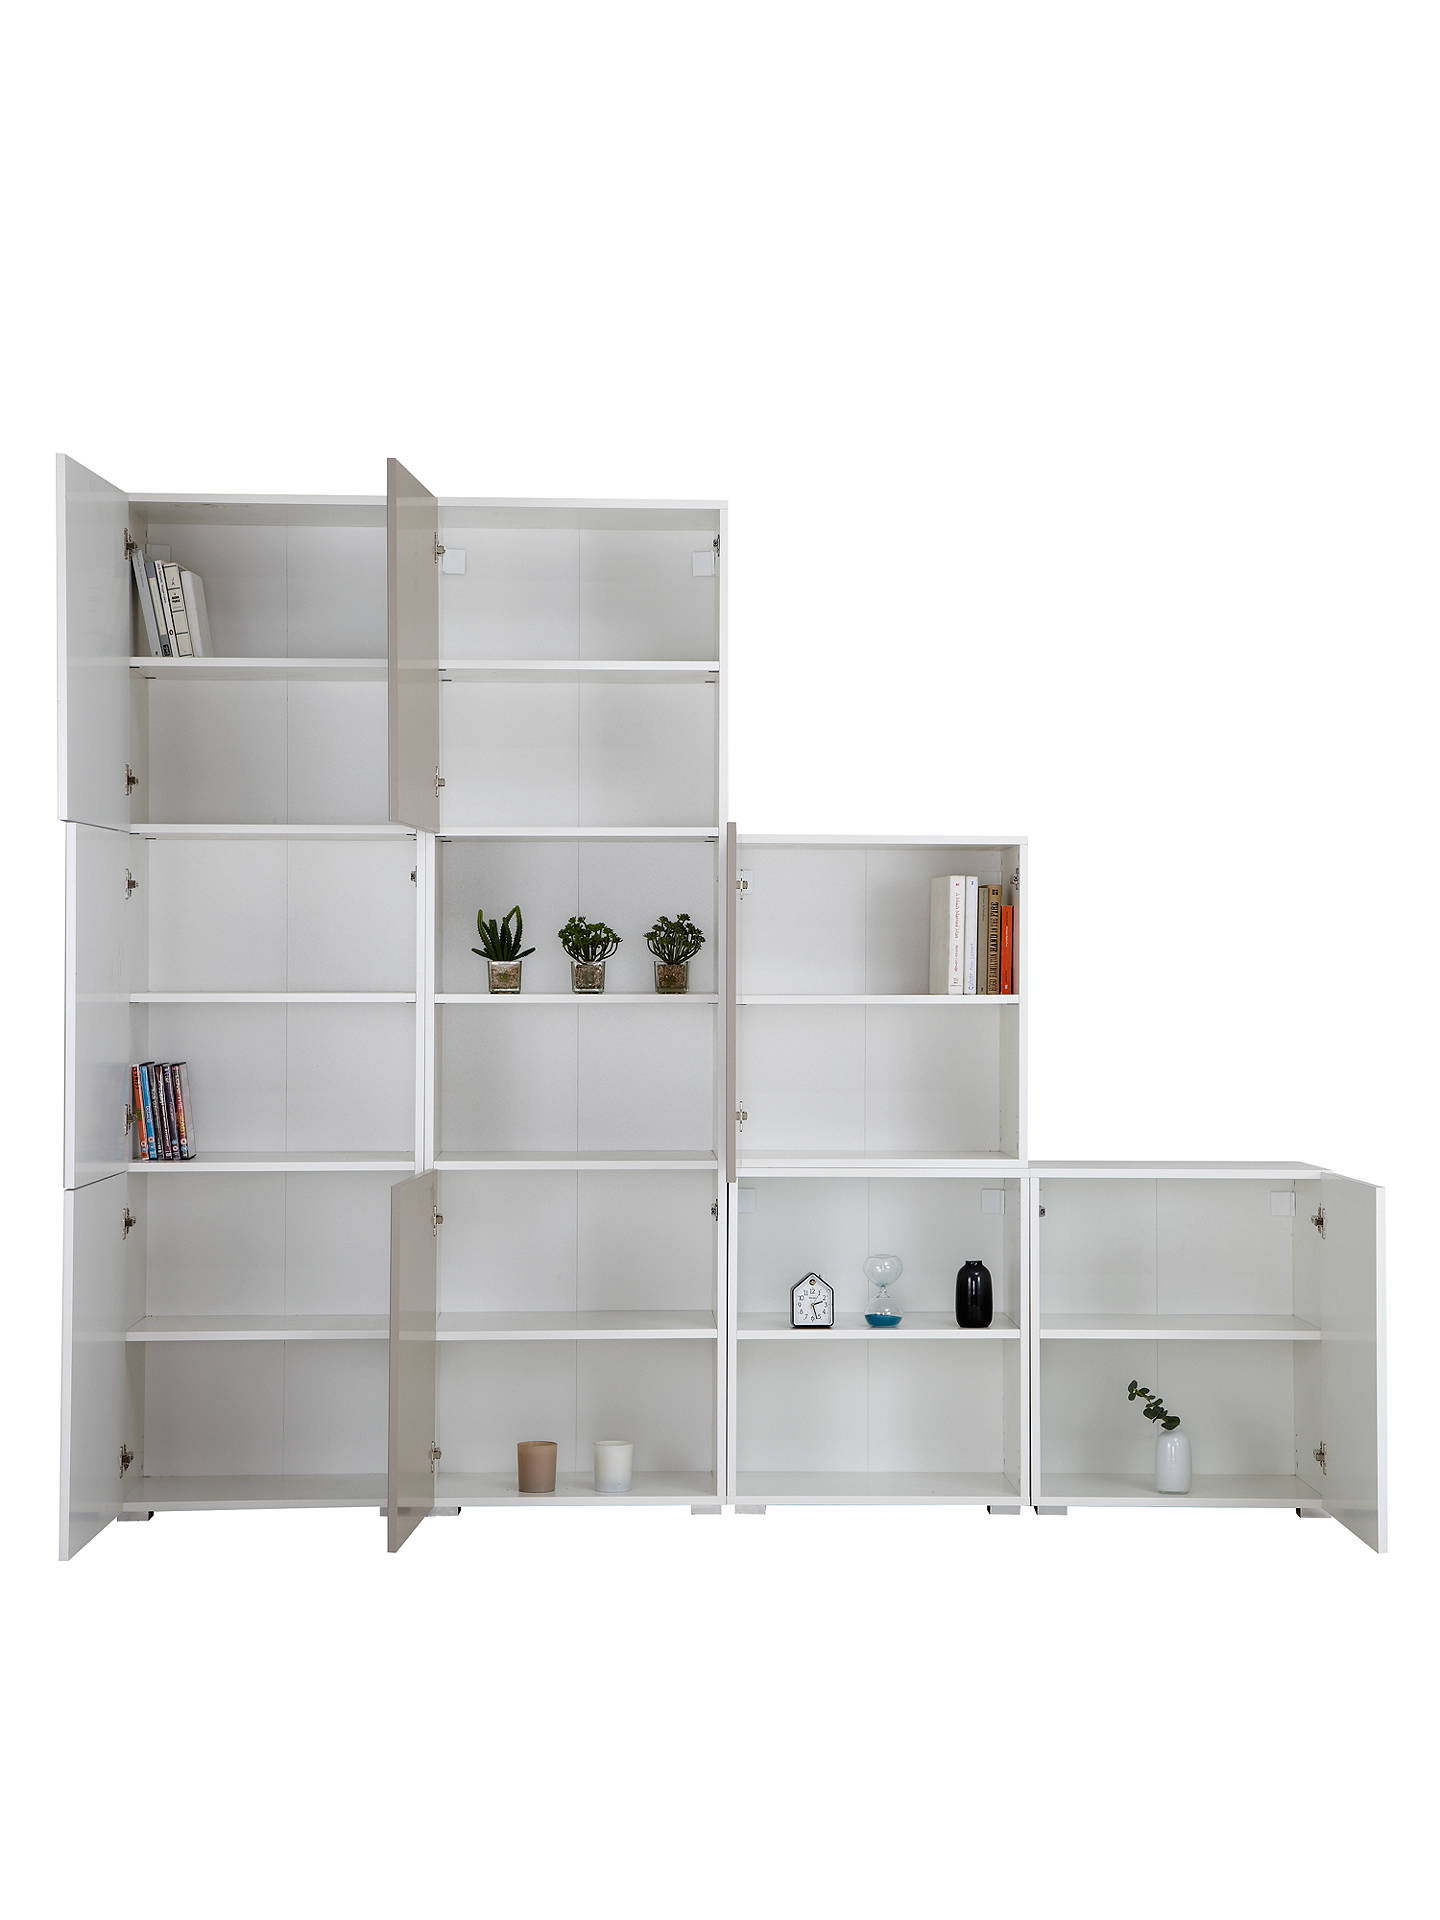 BuyHouse by John Lewis Mix it Tall 240cm 7-Door Shelf Unit, White/Mocha Online at johnlewis.com